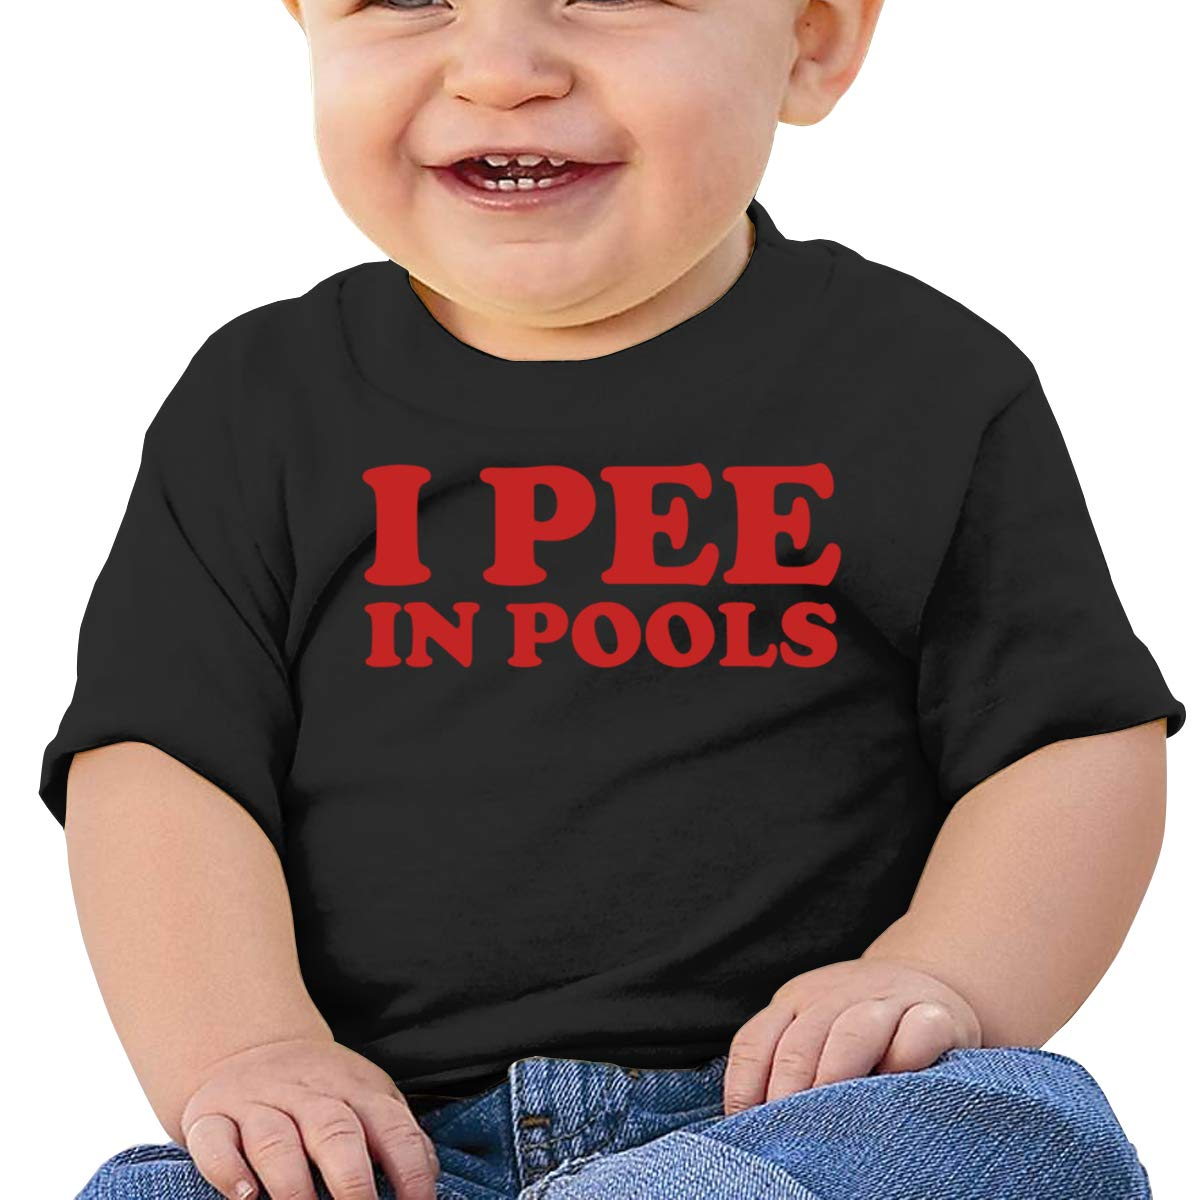 I Pee in Pools Baby T-Shirt Baby Boy Girl Cotton T Shirts Comfort Outfits for 6M-2T Baby